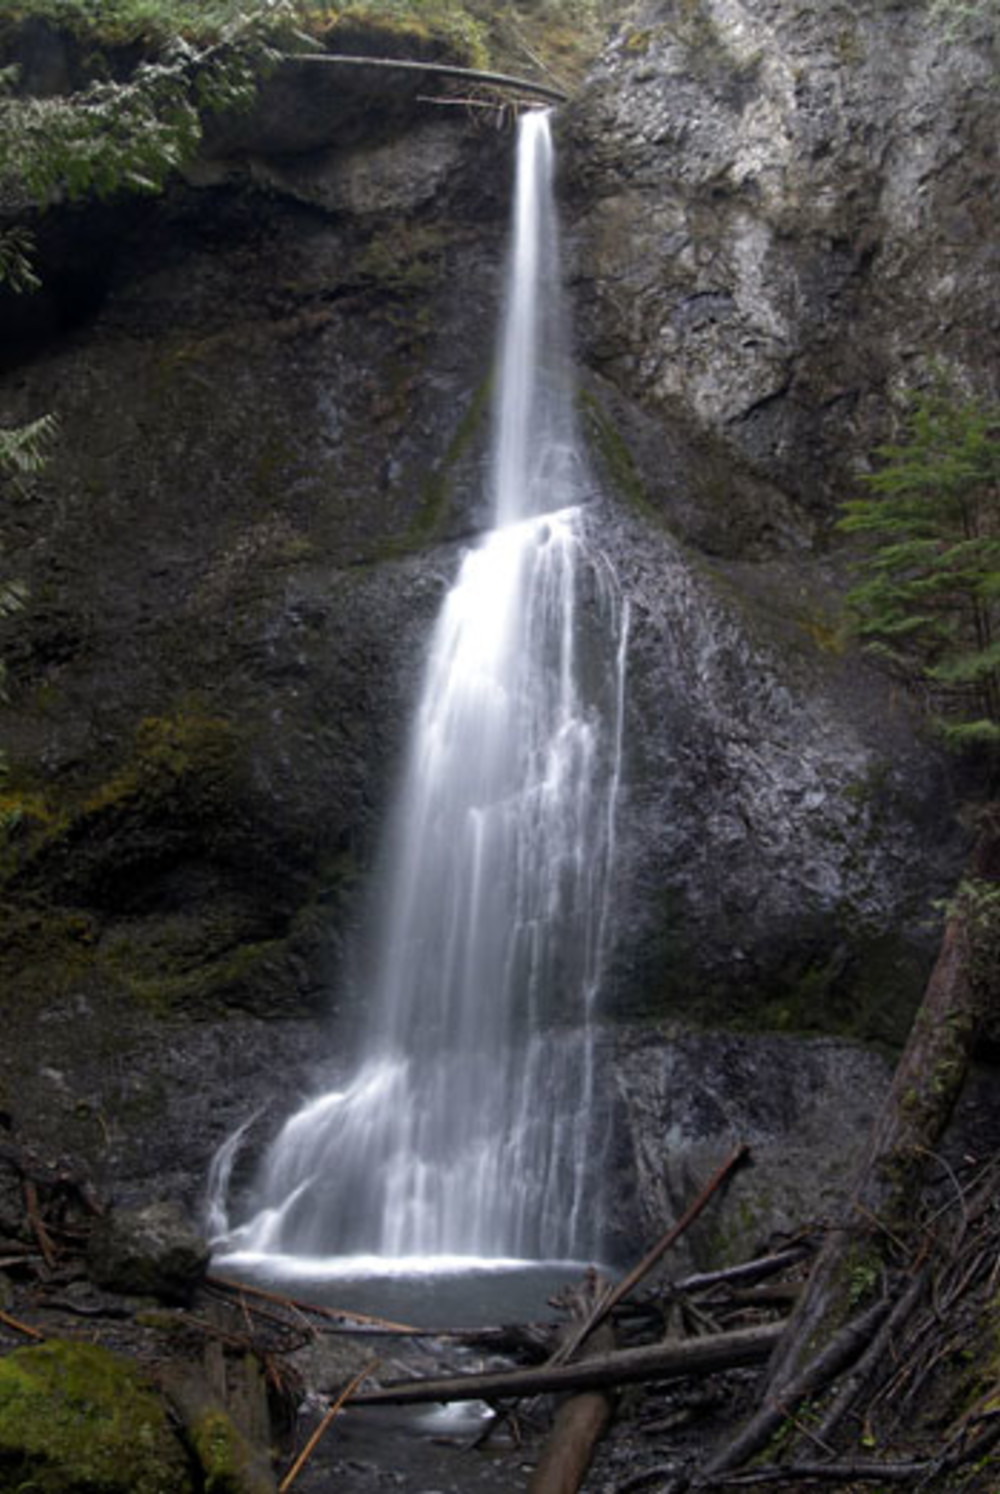 Day 1: Hike to Marymere Falls (trailhead at Lake Crescent)